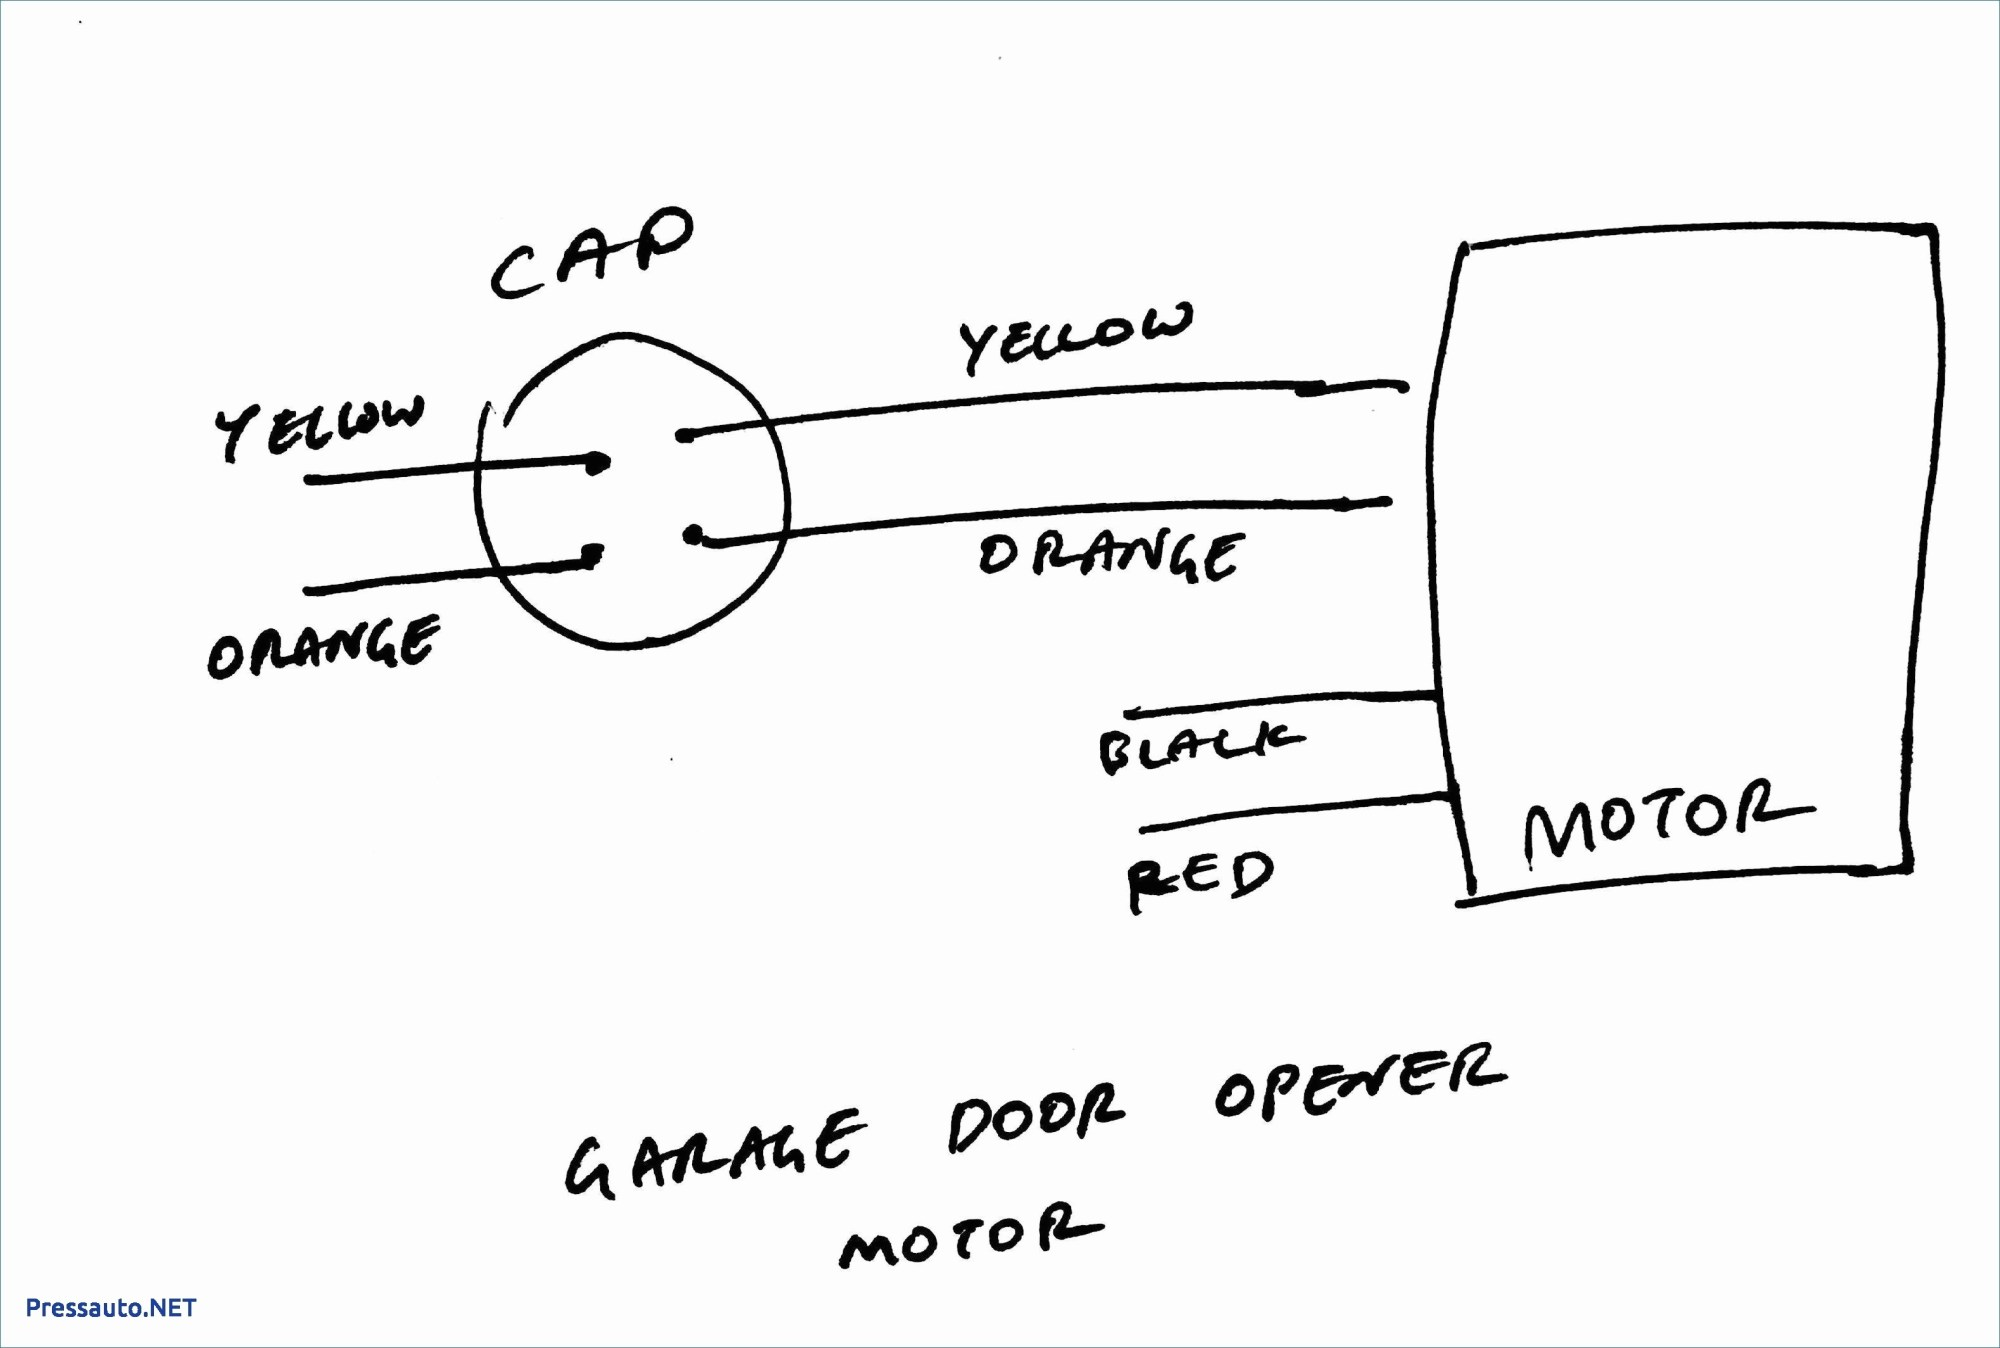 hight resolution of wiring dc diagram motor m 175310 wiring diagramwiring dc diagram motor m 175310 library wiring diagramdc